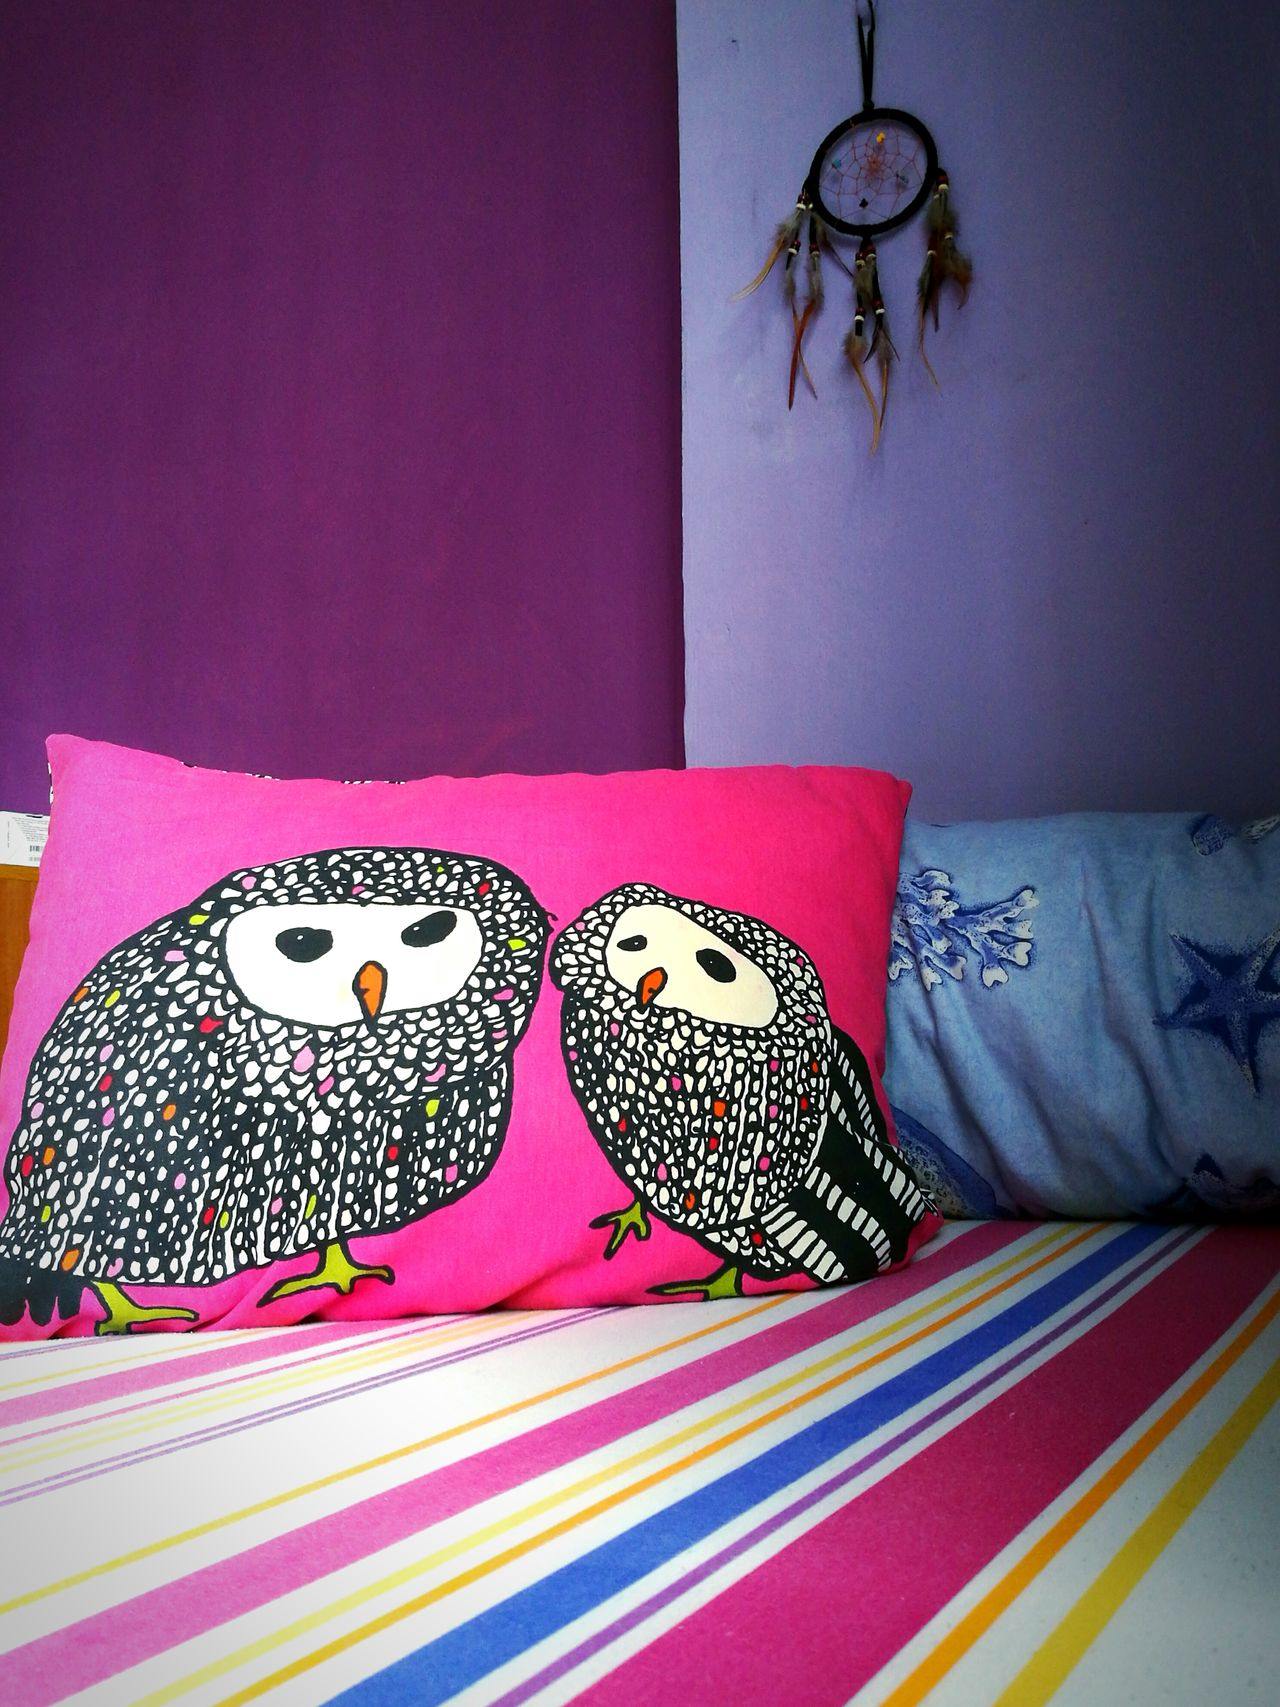 My Favorite Place My Space Indoors  No People Personal Space Cushions  Pillows Dream Catcher Pink And Purple Purple Wall Soothing Invigorating Comfortable Comfycozy Soft Warm Light Snoozing Afternoon Nap